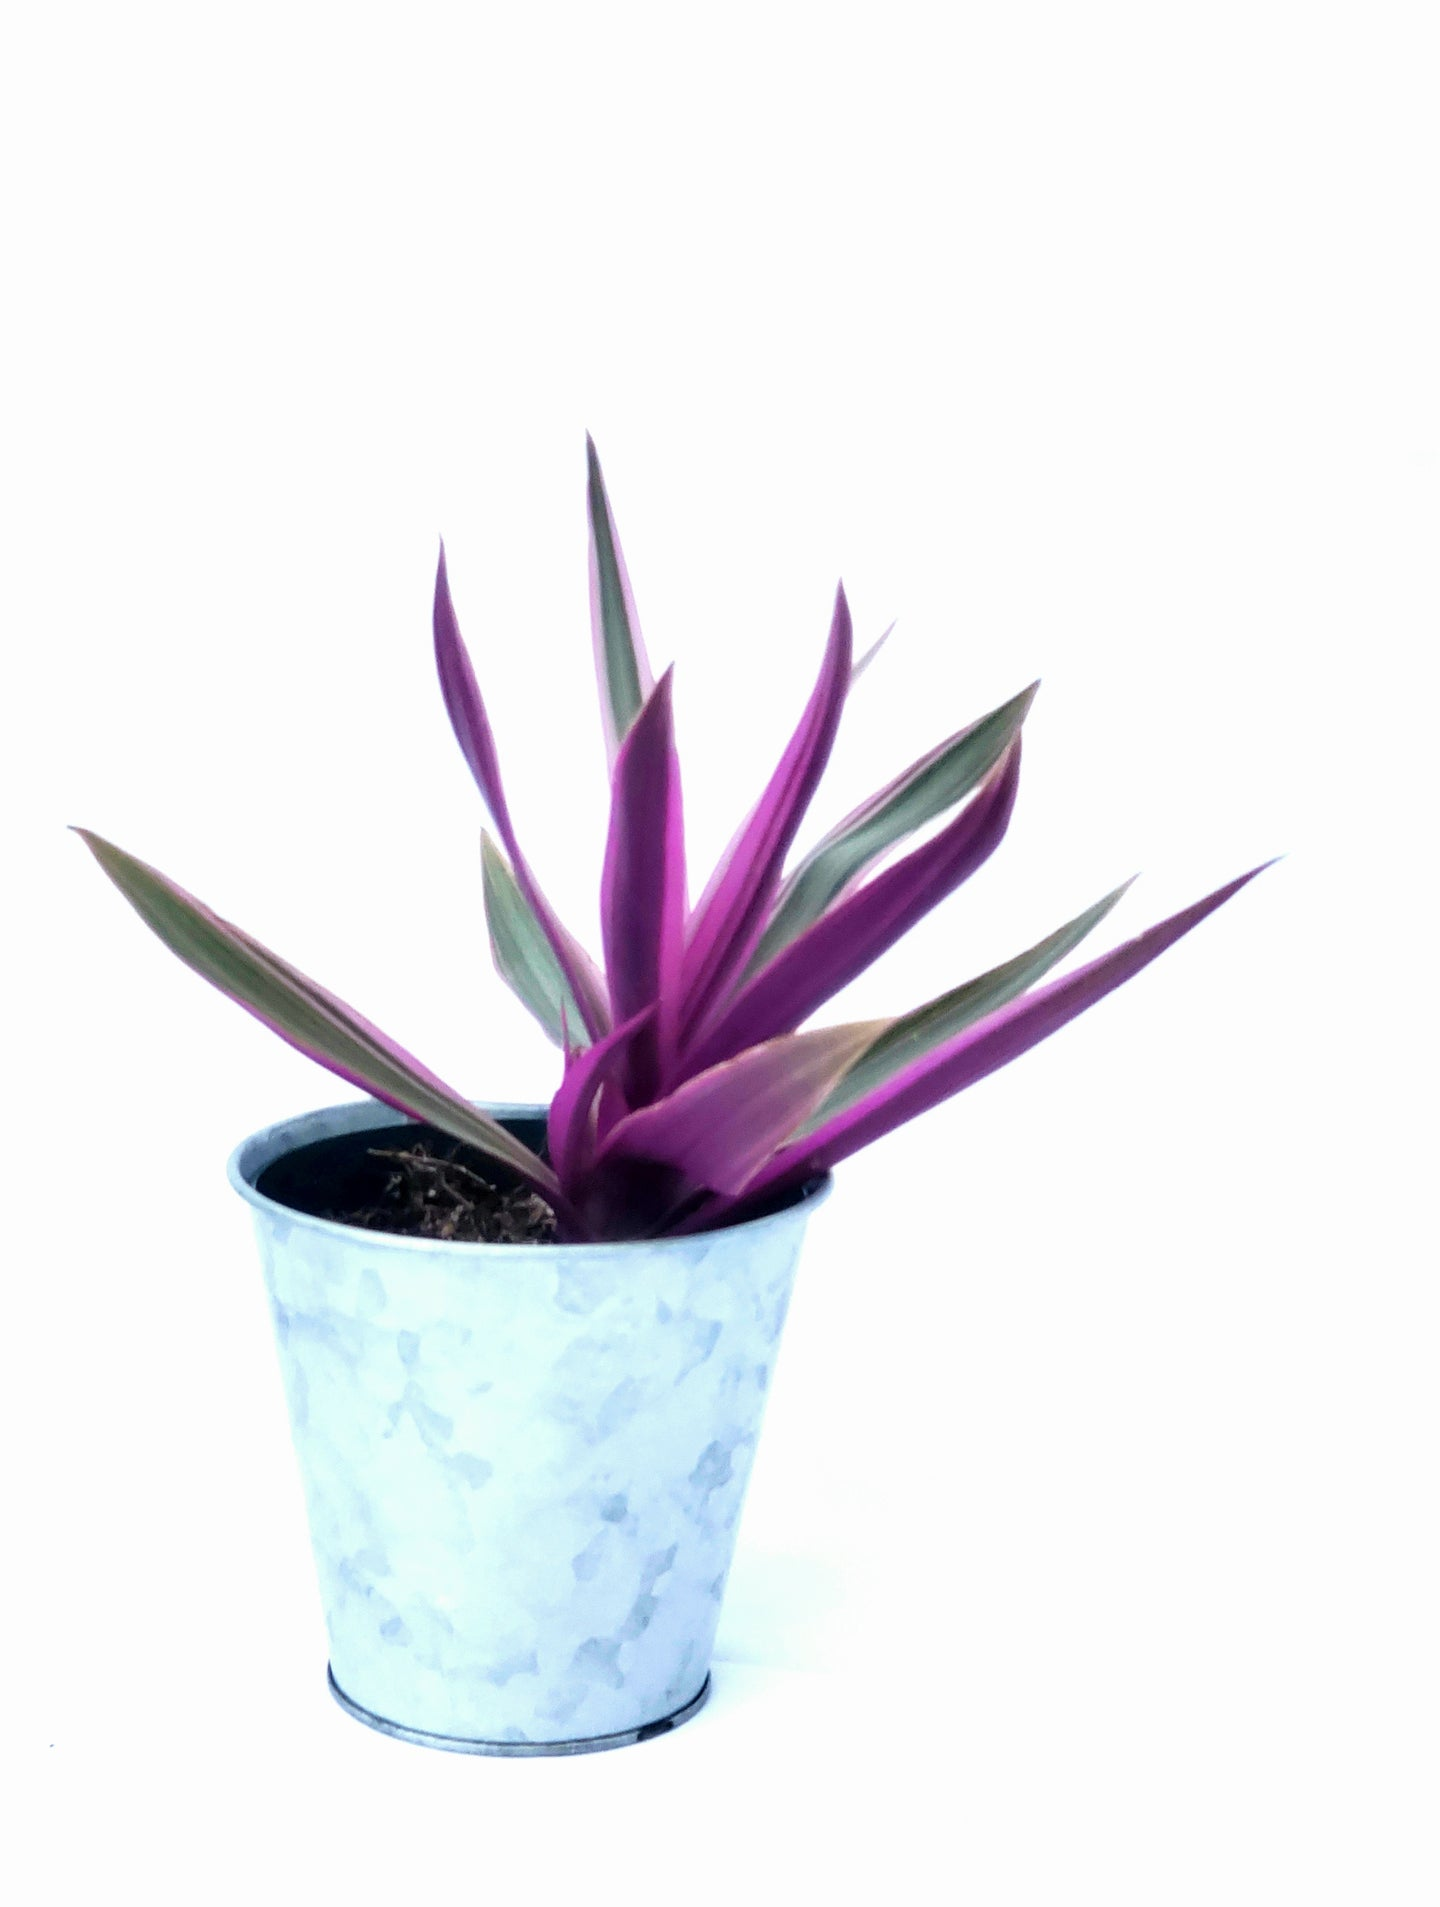 Tradescantia Spathacea | Oyster Plant in 4' recycled plastic planter